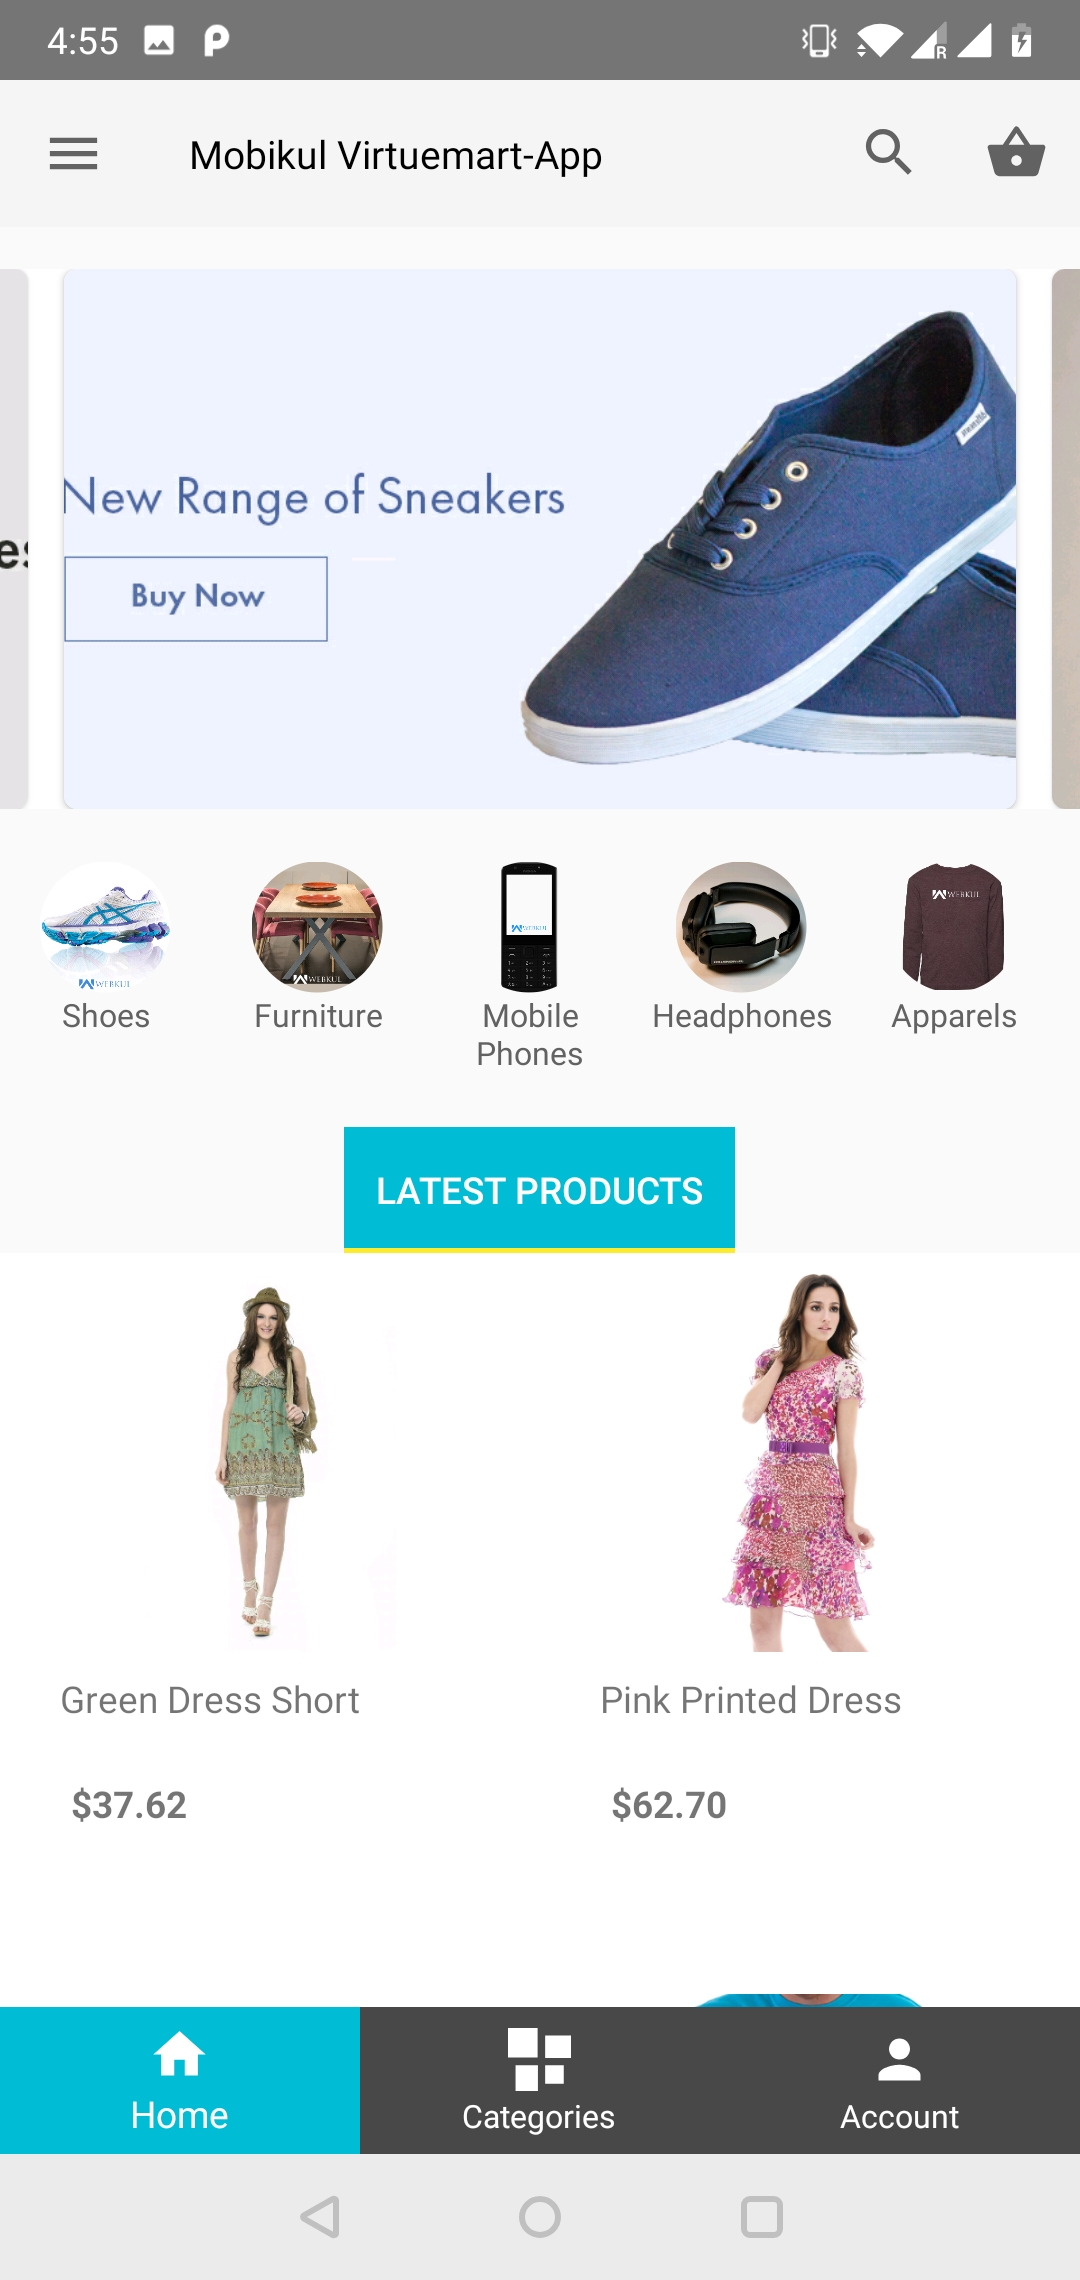 Mobikul Joomla VirtueMart E-commerce Mobile App